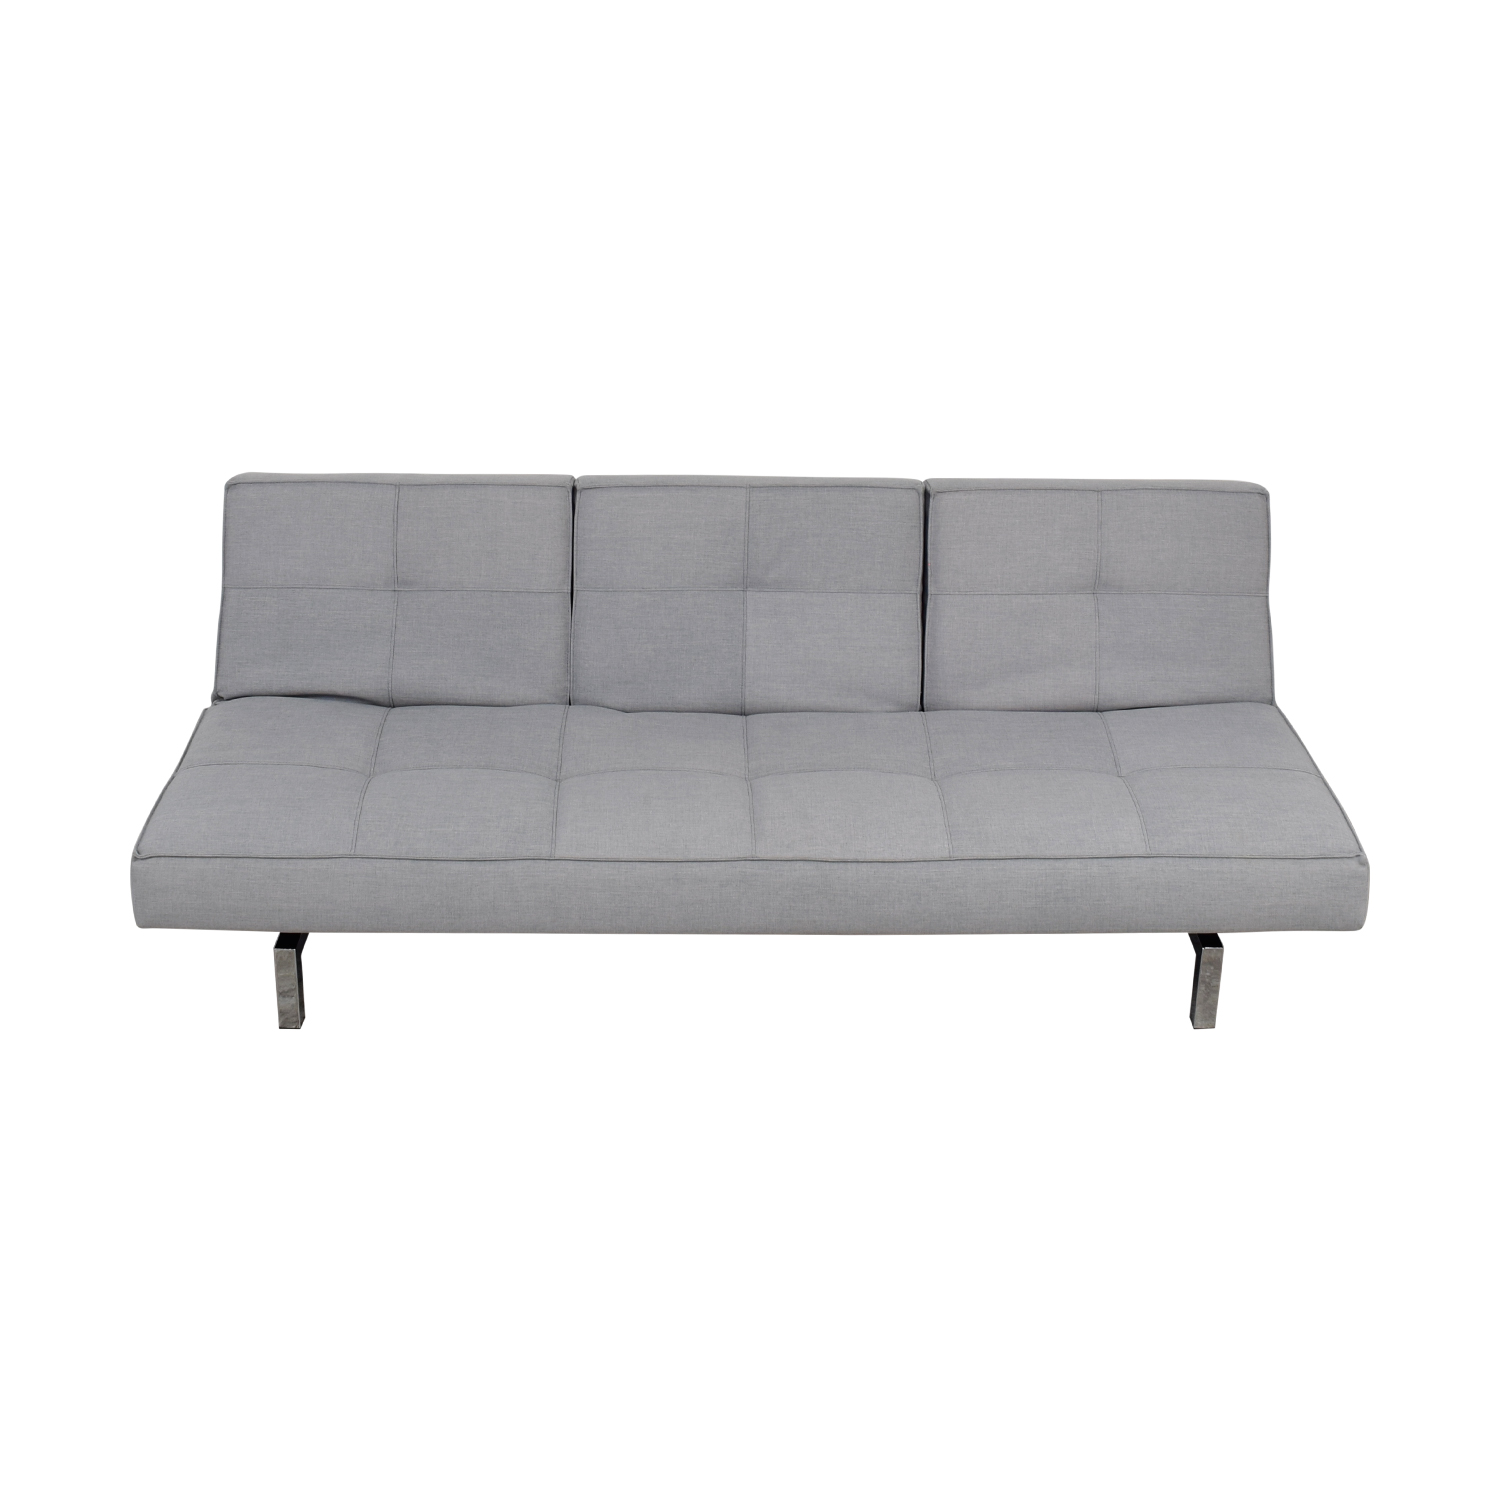 Room & Board Room & Board Eden Essen Grey Convertible Sleeper Sofa coupon